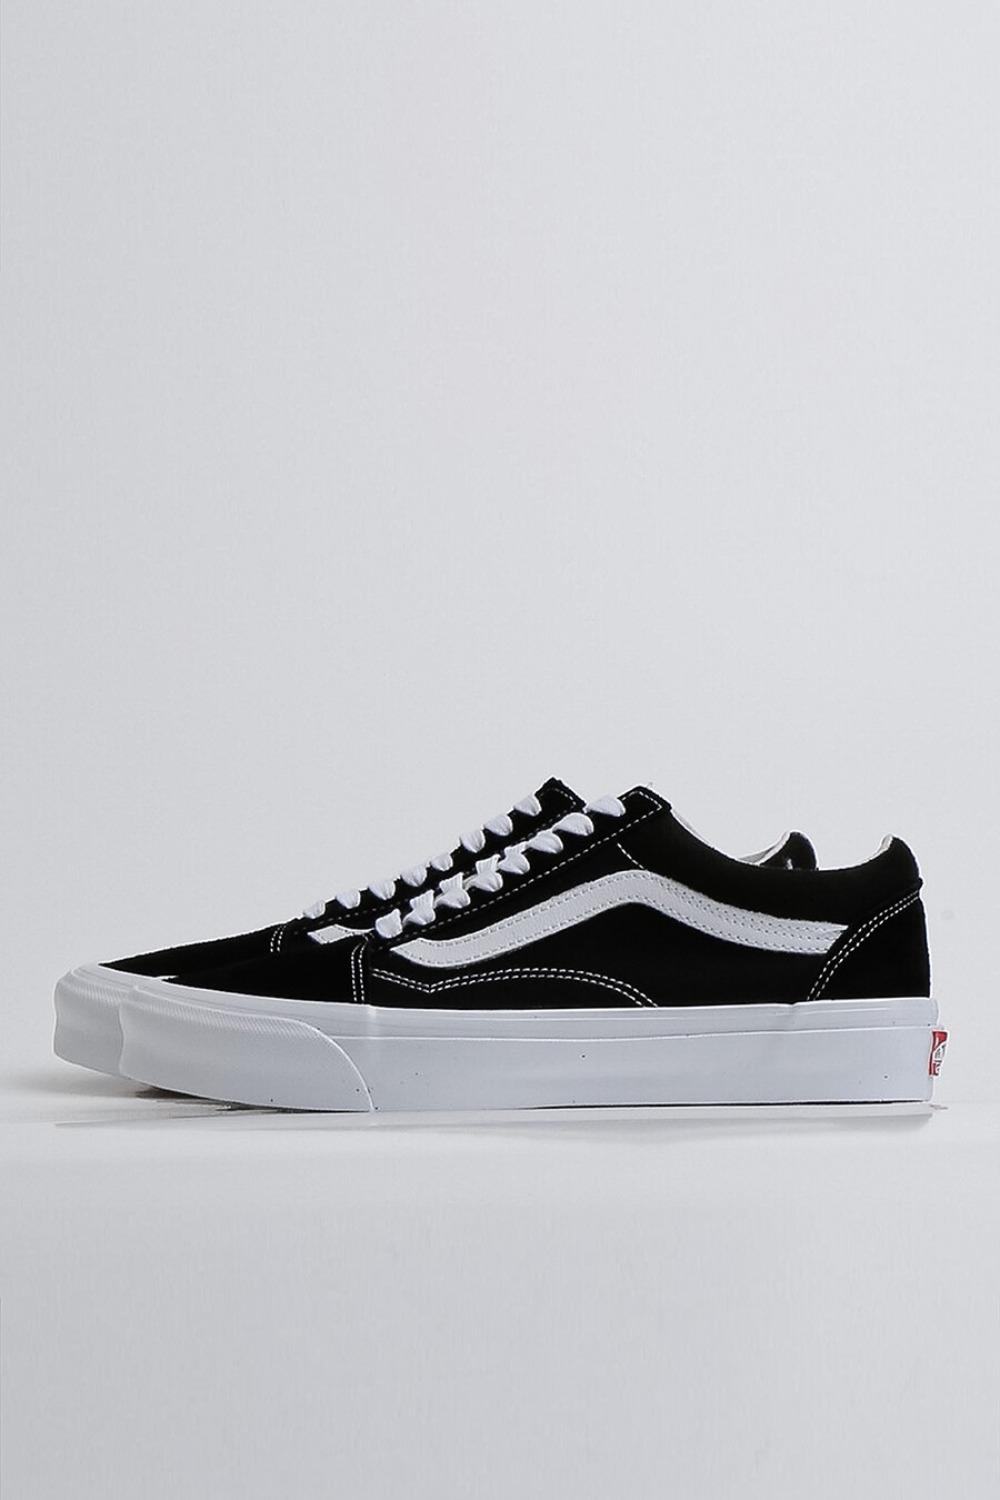 (RESTOCK)OG OLD SKOOL LX(SUEDE/CANVAS) BLACK/TRUE WHITE (VN0A4P3XOIU1)